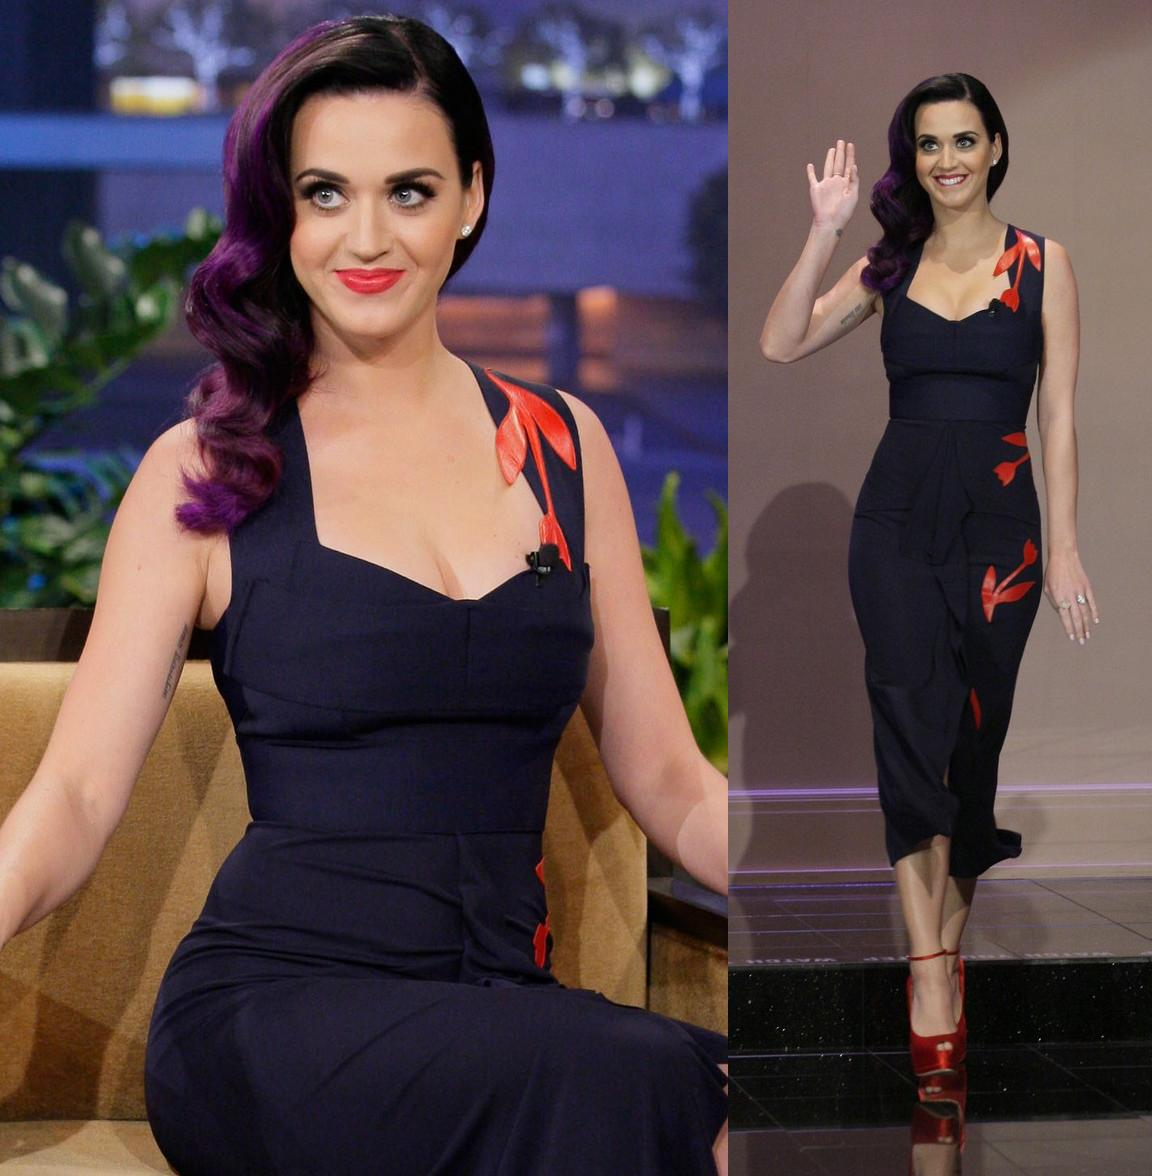 http://4.bp.blogspot.com/-l6aYZsHoHe8/T-03N24lQII/AAAAAAAAKuU/YaLGPof_pYs/s1600/Katy+Perry+in+Roland+Mouret+-+\'The+Tonight+Show+with+Jay+Leno\'+Appearance.jpg